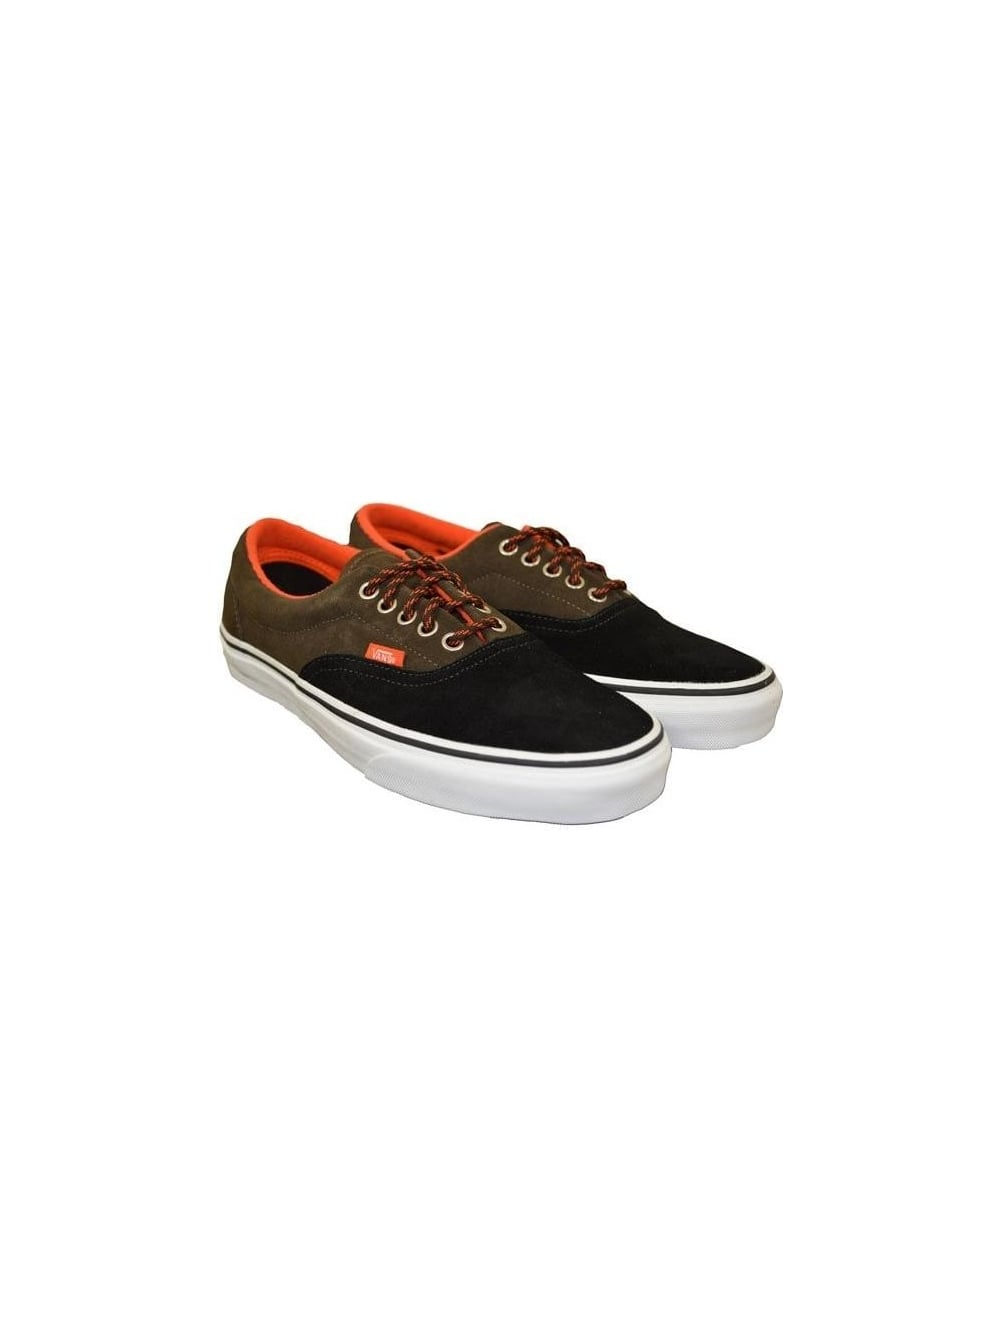 best service 18a51 f9e49 Vans Era Suede - Black Brown